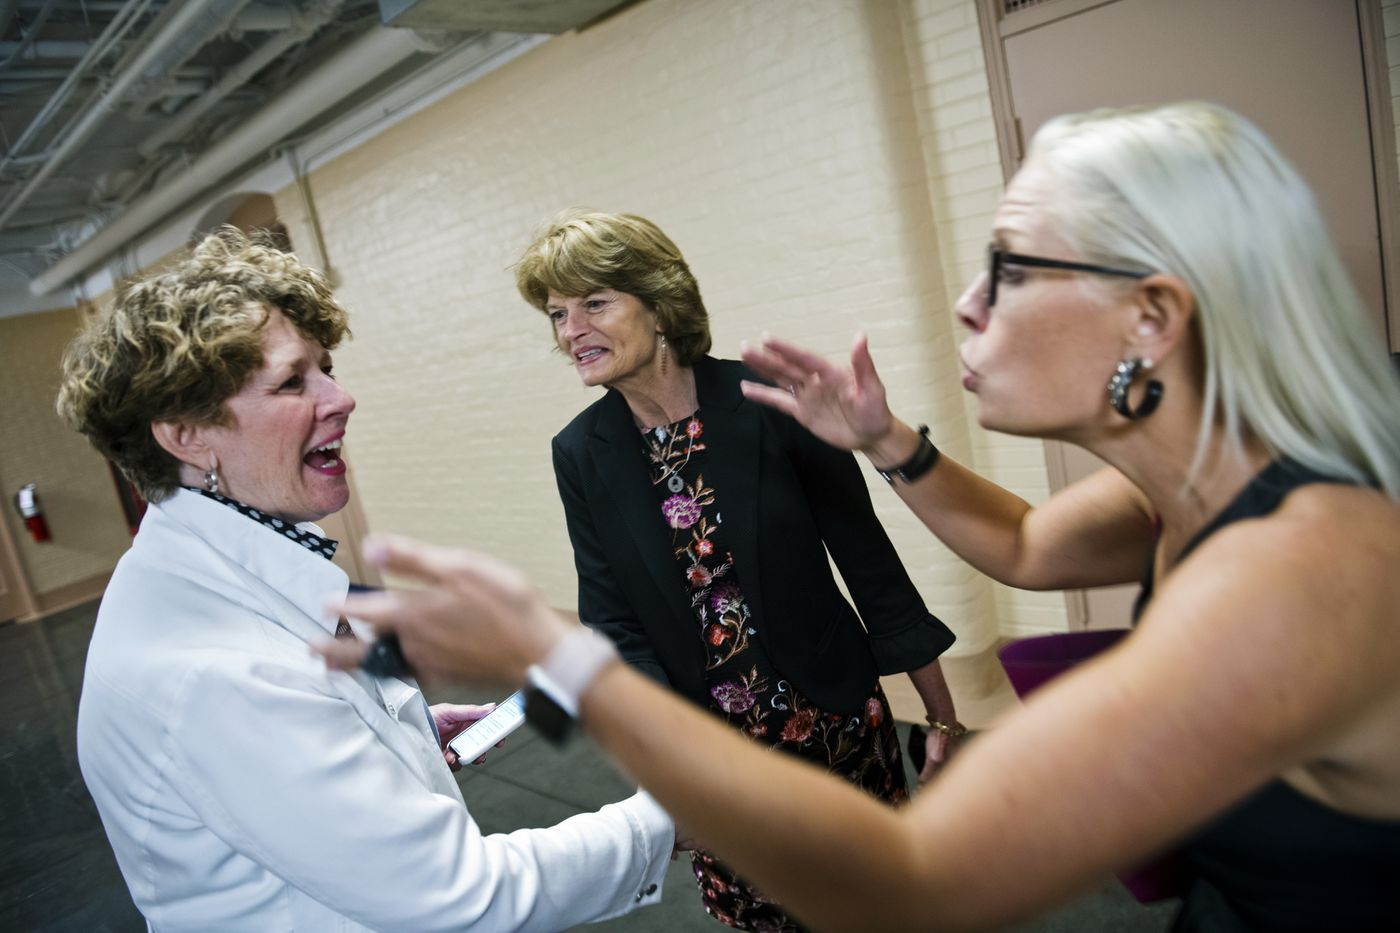 Rep. Susan Brooks, R-Indiana, greets Sen. Lisa Murkowski and Sen. Kyrsten Sinema, D-Arizona, as they walk to Murkowski's hideaway office in the Capitol on June 18, 2019. Murkowski said the meeting, which included another Democratic representative, was part of her effort to build relationships across party lines in Congress. (Marc Lester / ADN)